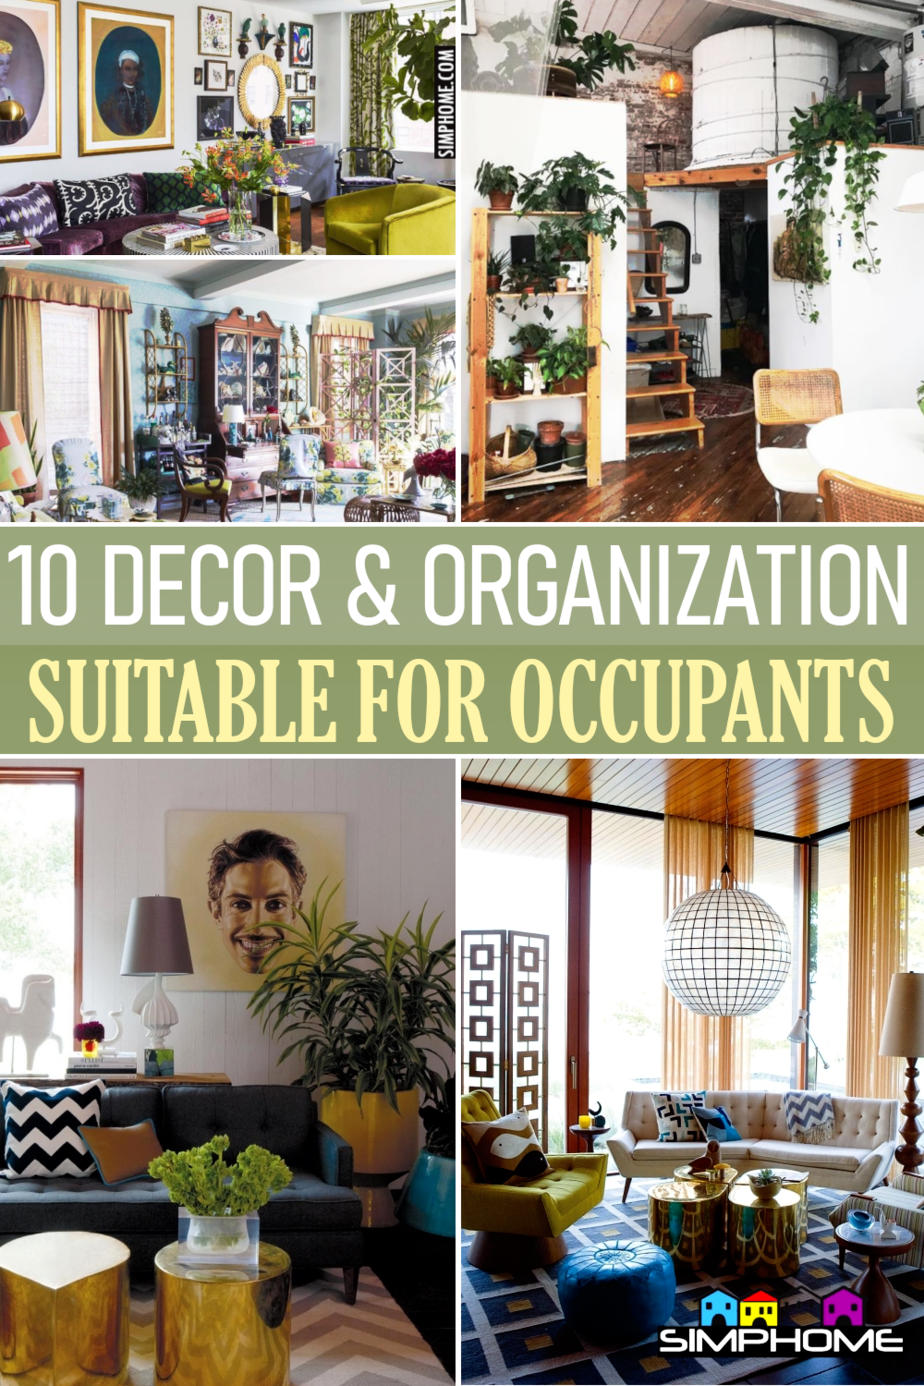 10 Renter Friendly Living Room Decor and Organization via Simphome.comFeatured